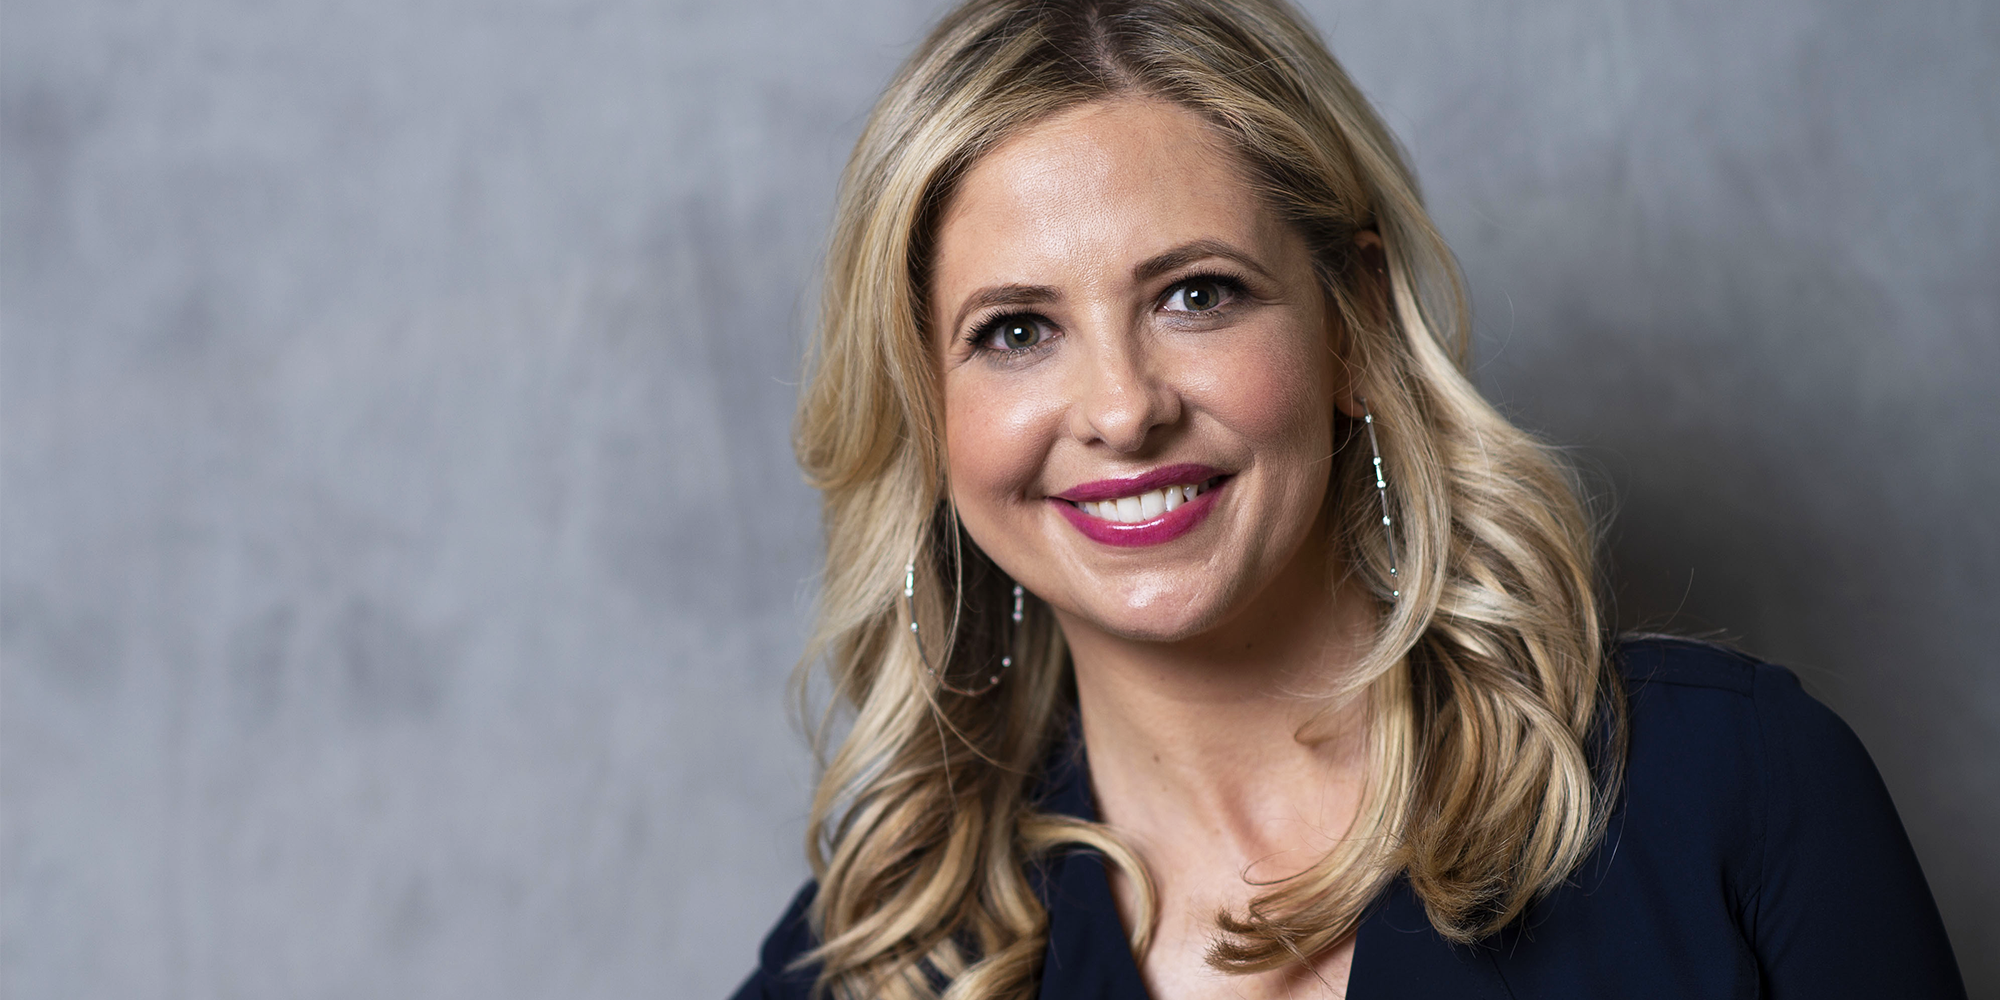 Sarah Michelle Gellar Talks Buffy and Her Most Beloved Roles Ahead of Her Return to TV